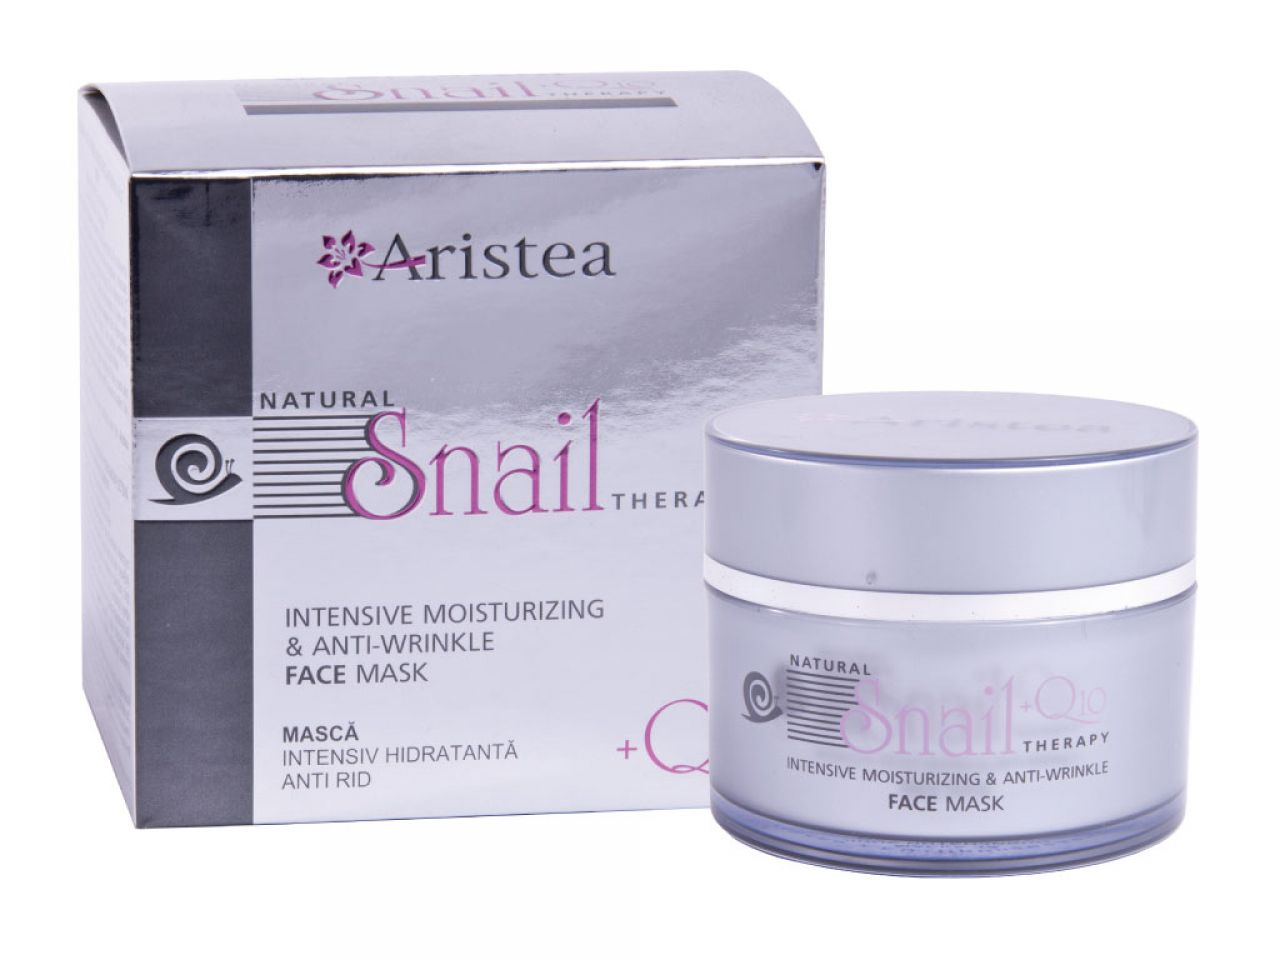 Intensive moisturizing & anti-wrinkle face mask with snail extract and Q10